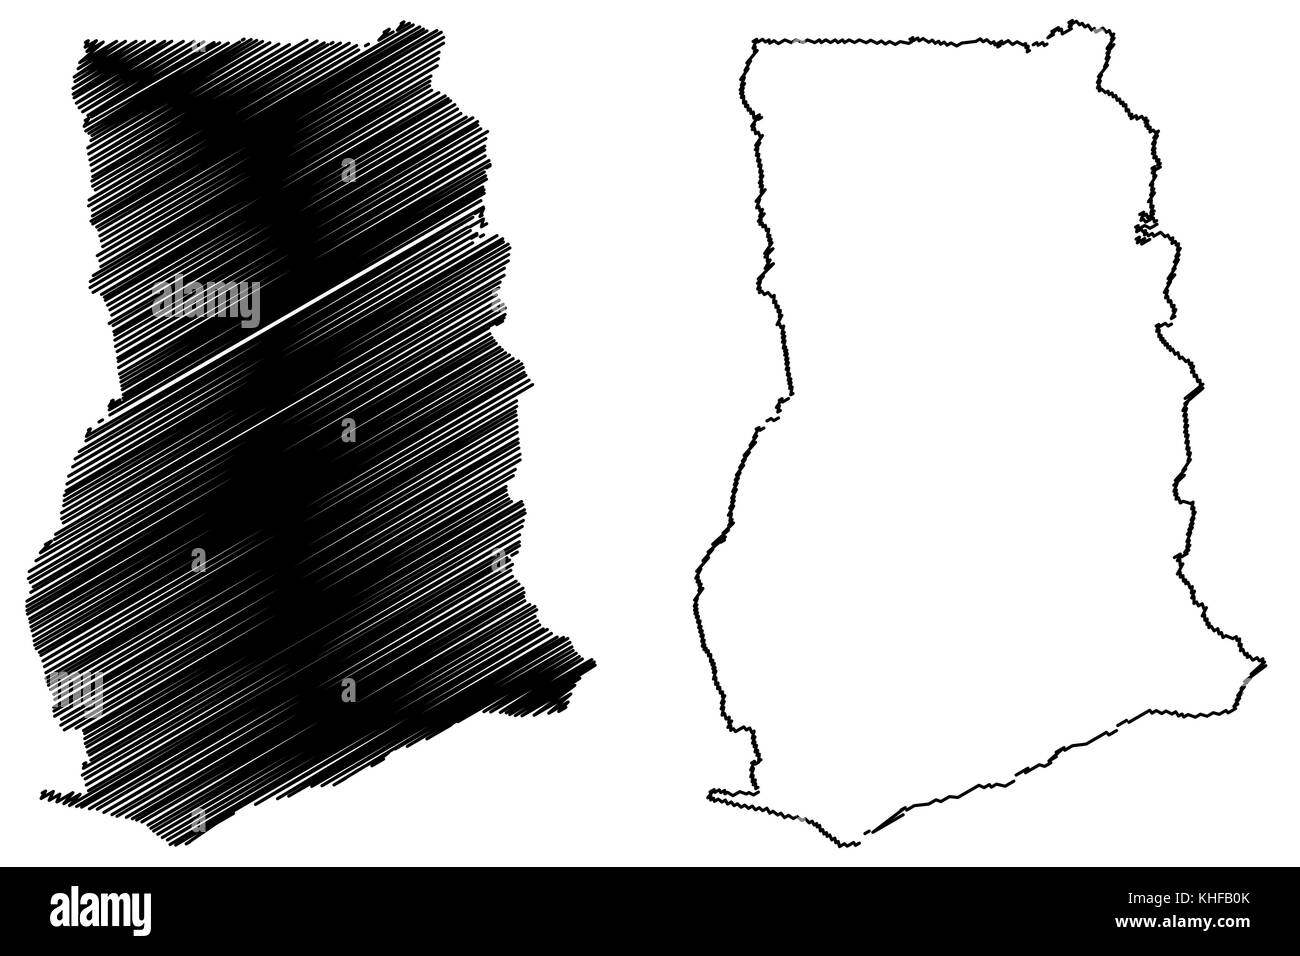 Ghana map vector illustration, scribble sketch Republic of Ghana - Stock Image